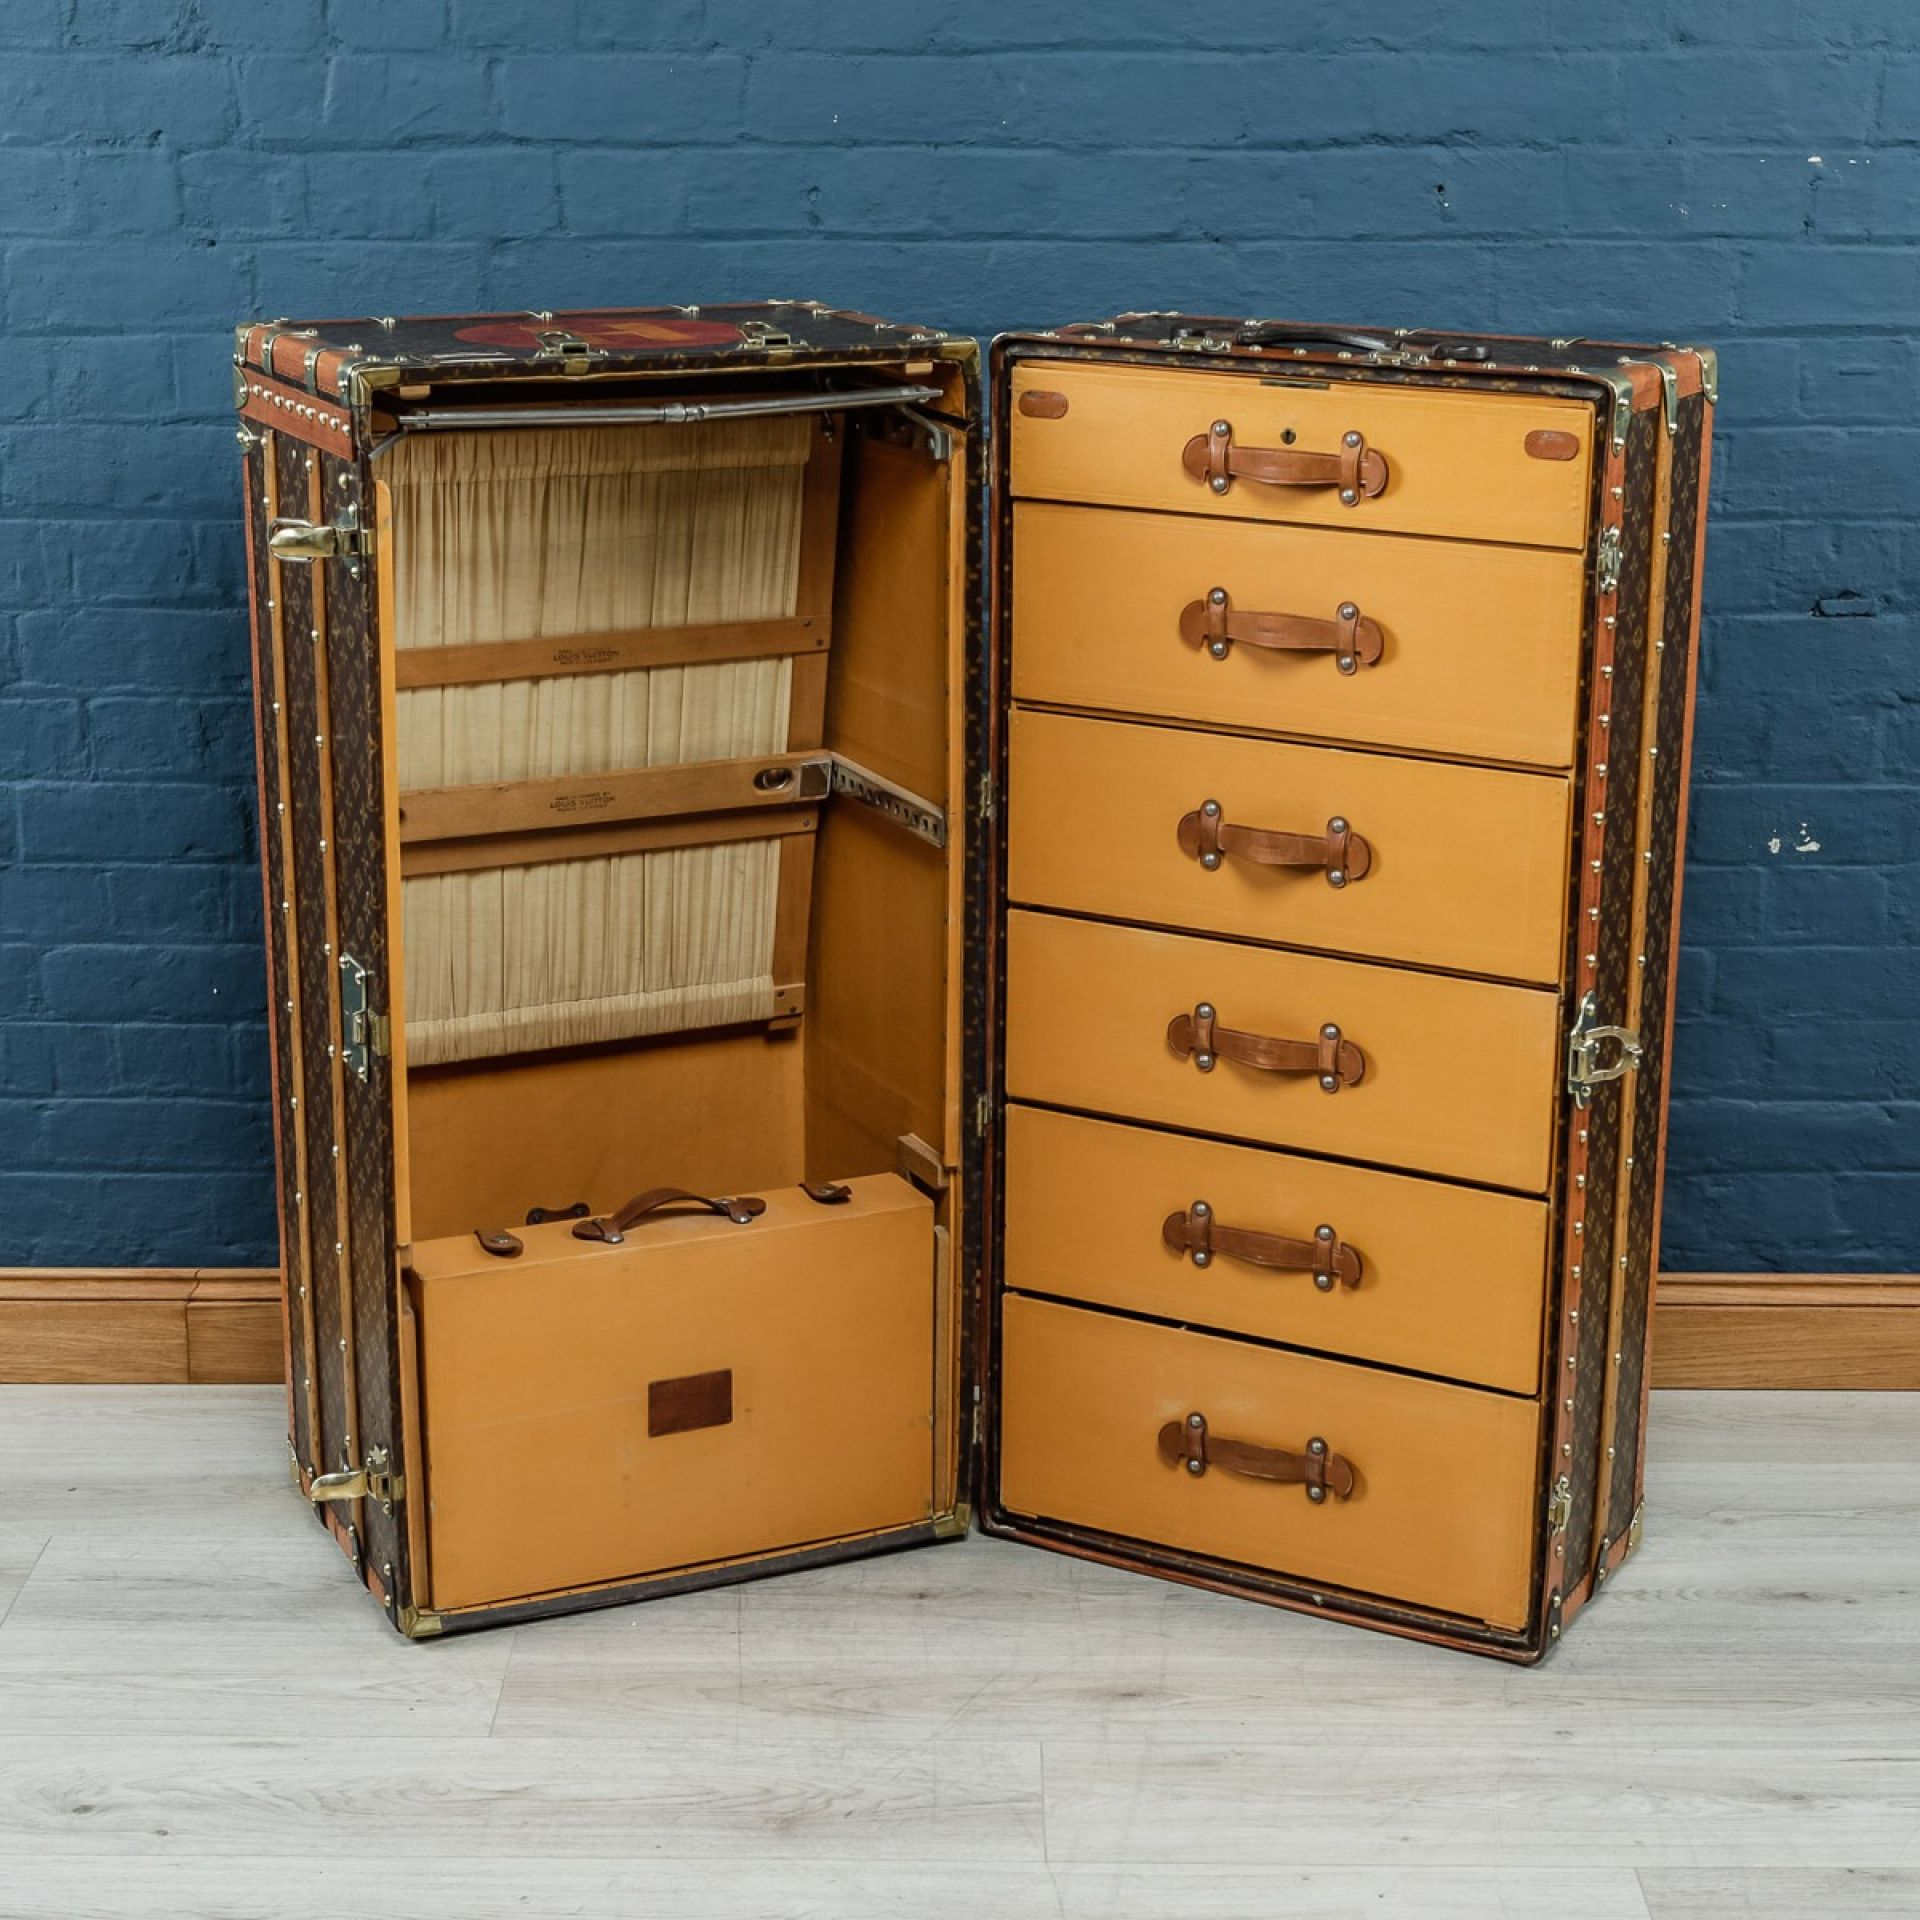 ANTIQUE 20thC MASSIVE LOUIS VUITTON WARDROBE TRUNK c.1900